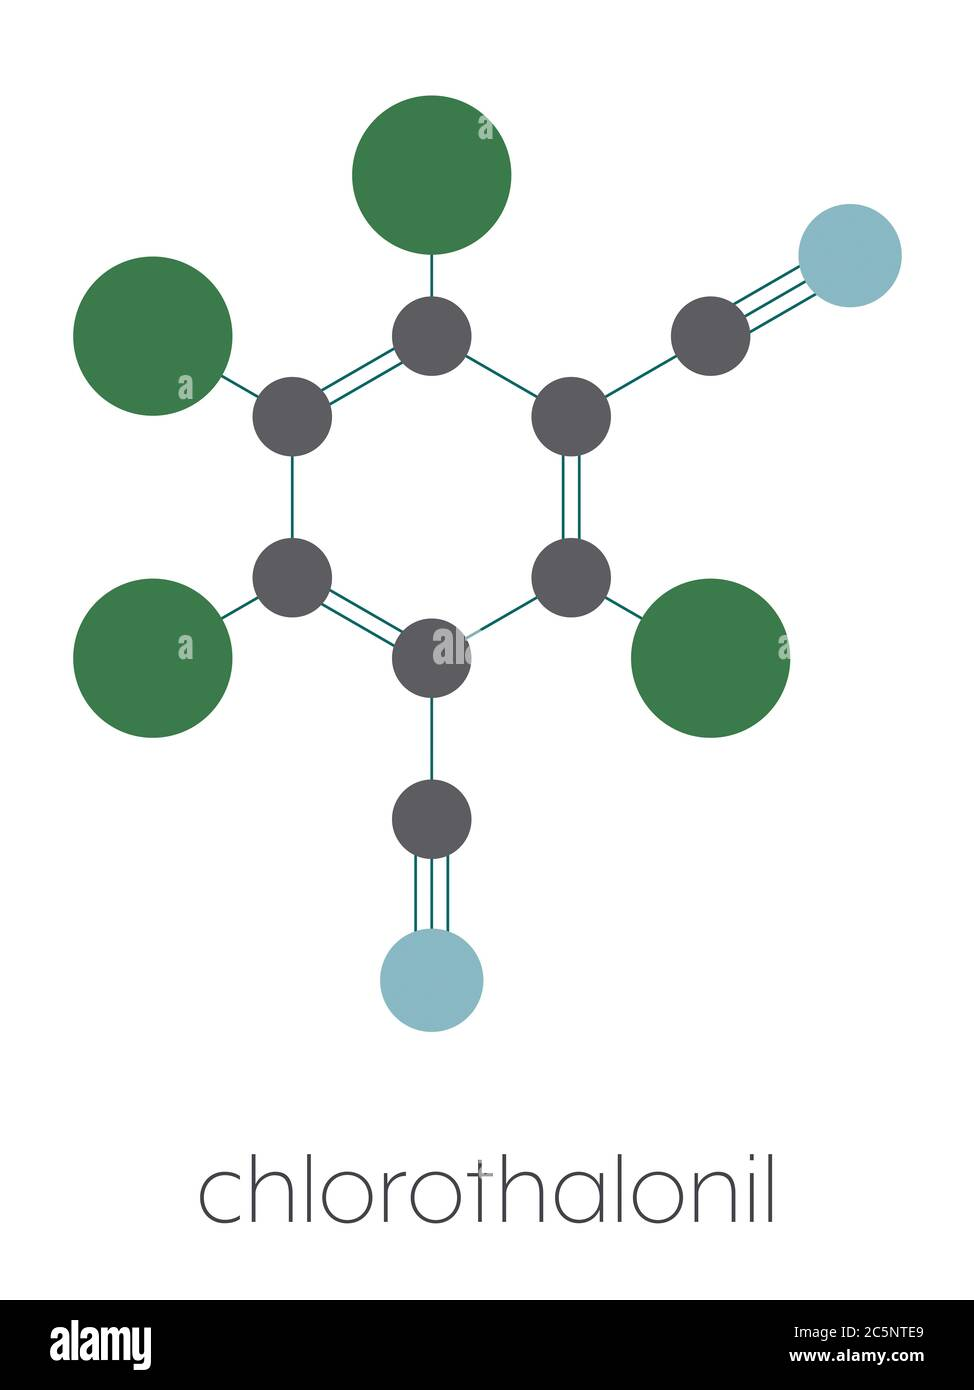 Chlorothalonil pesticide molecule. Stylized skeletal formula (chemical structure): Atoms are shown as color-coded circles: carbon (grey), nitrogen (blue), chlorine (green). Stock Photo